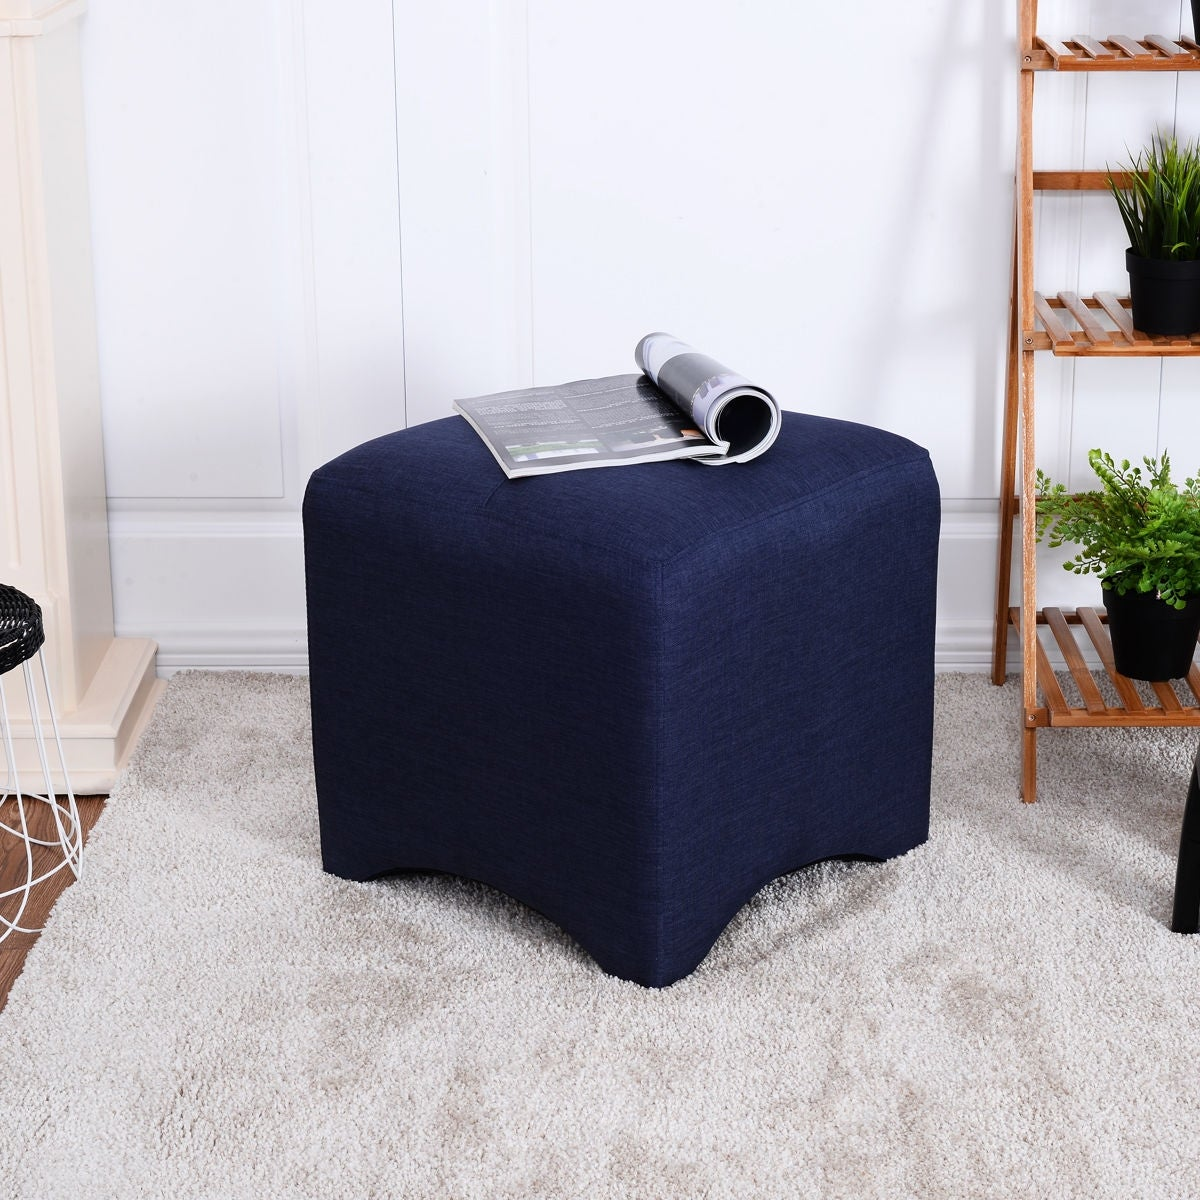 Shop Costway Navy Square Cube Ottoman Foot Stool Foot Rest Seating ...